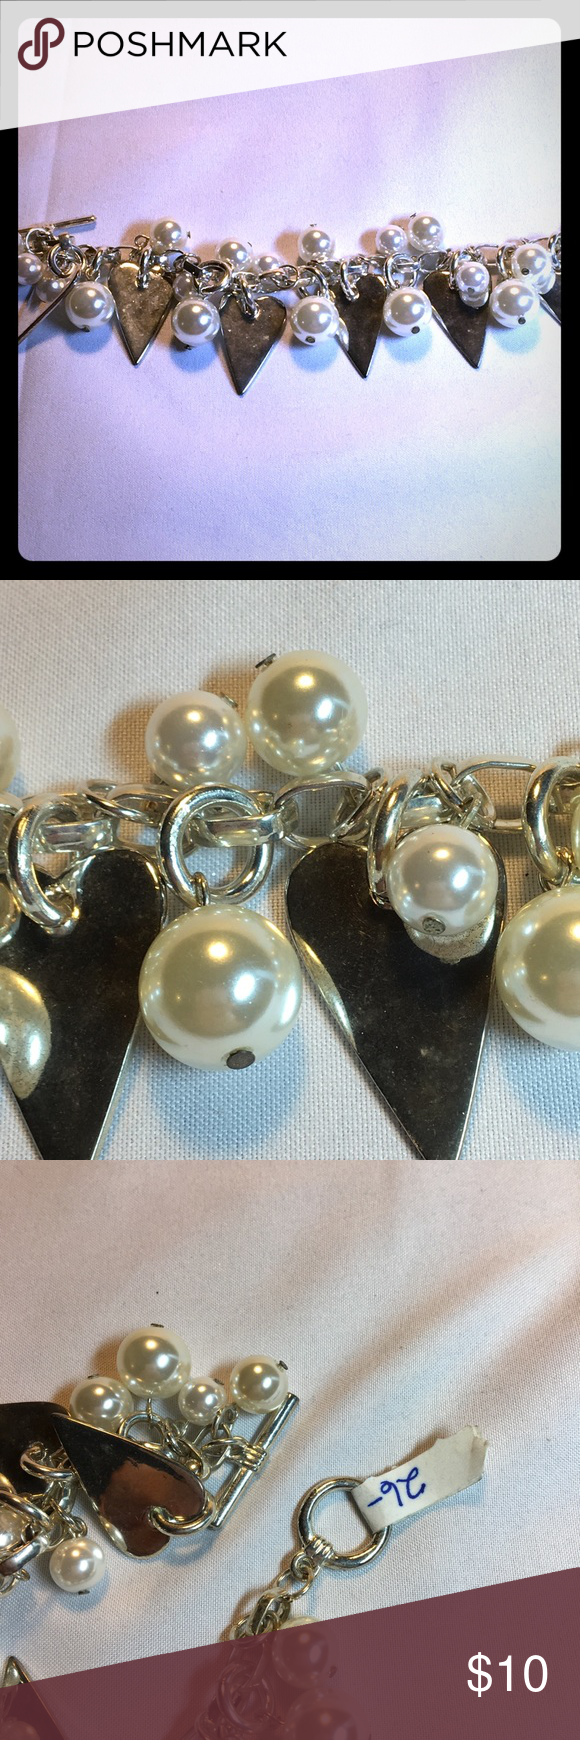 """Pearl and heart bracelet. Pearl and heart bracelet.  Toggle clasp. 7  3/4 """" long.  NWT. Never worn. #0023 Jewelry Bracelets"""